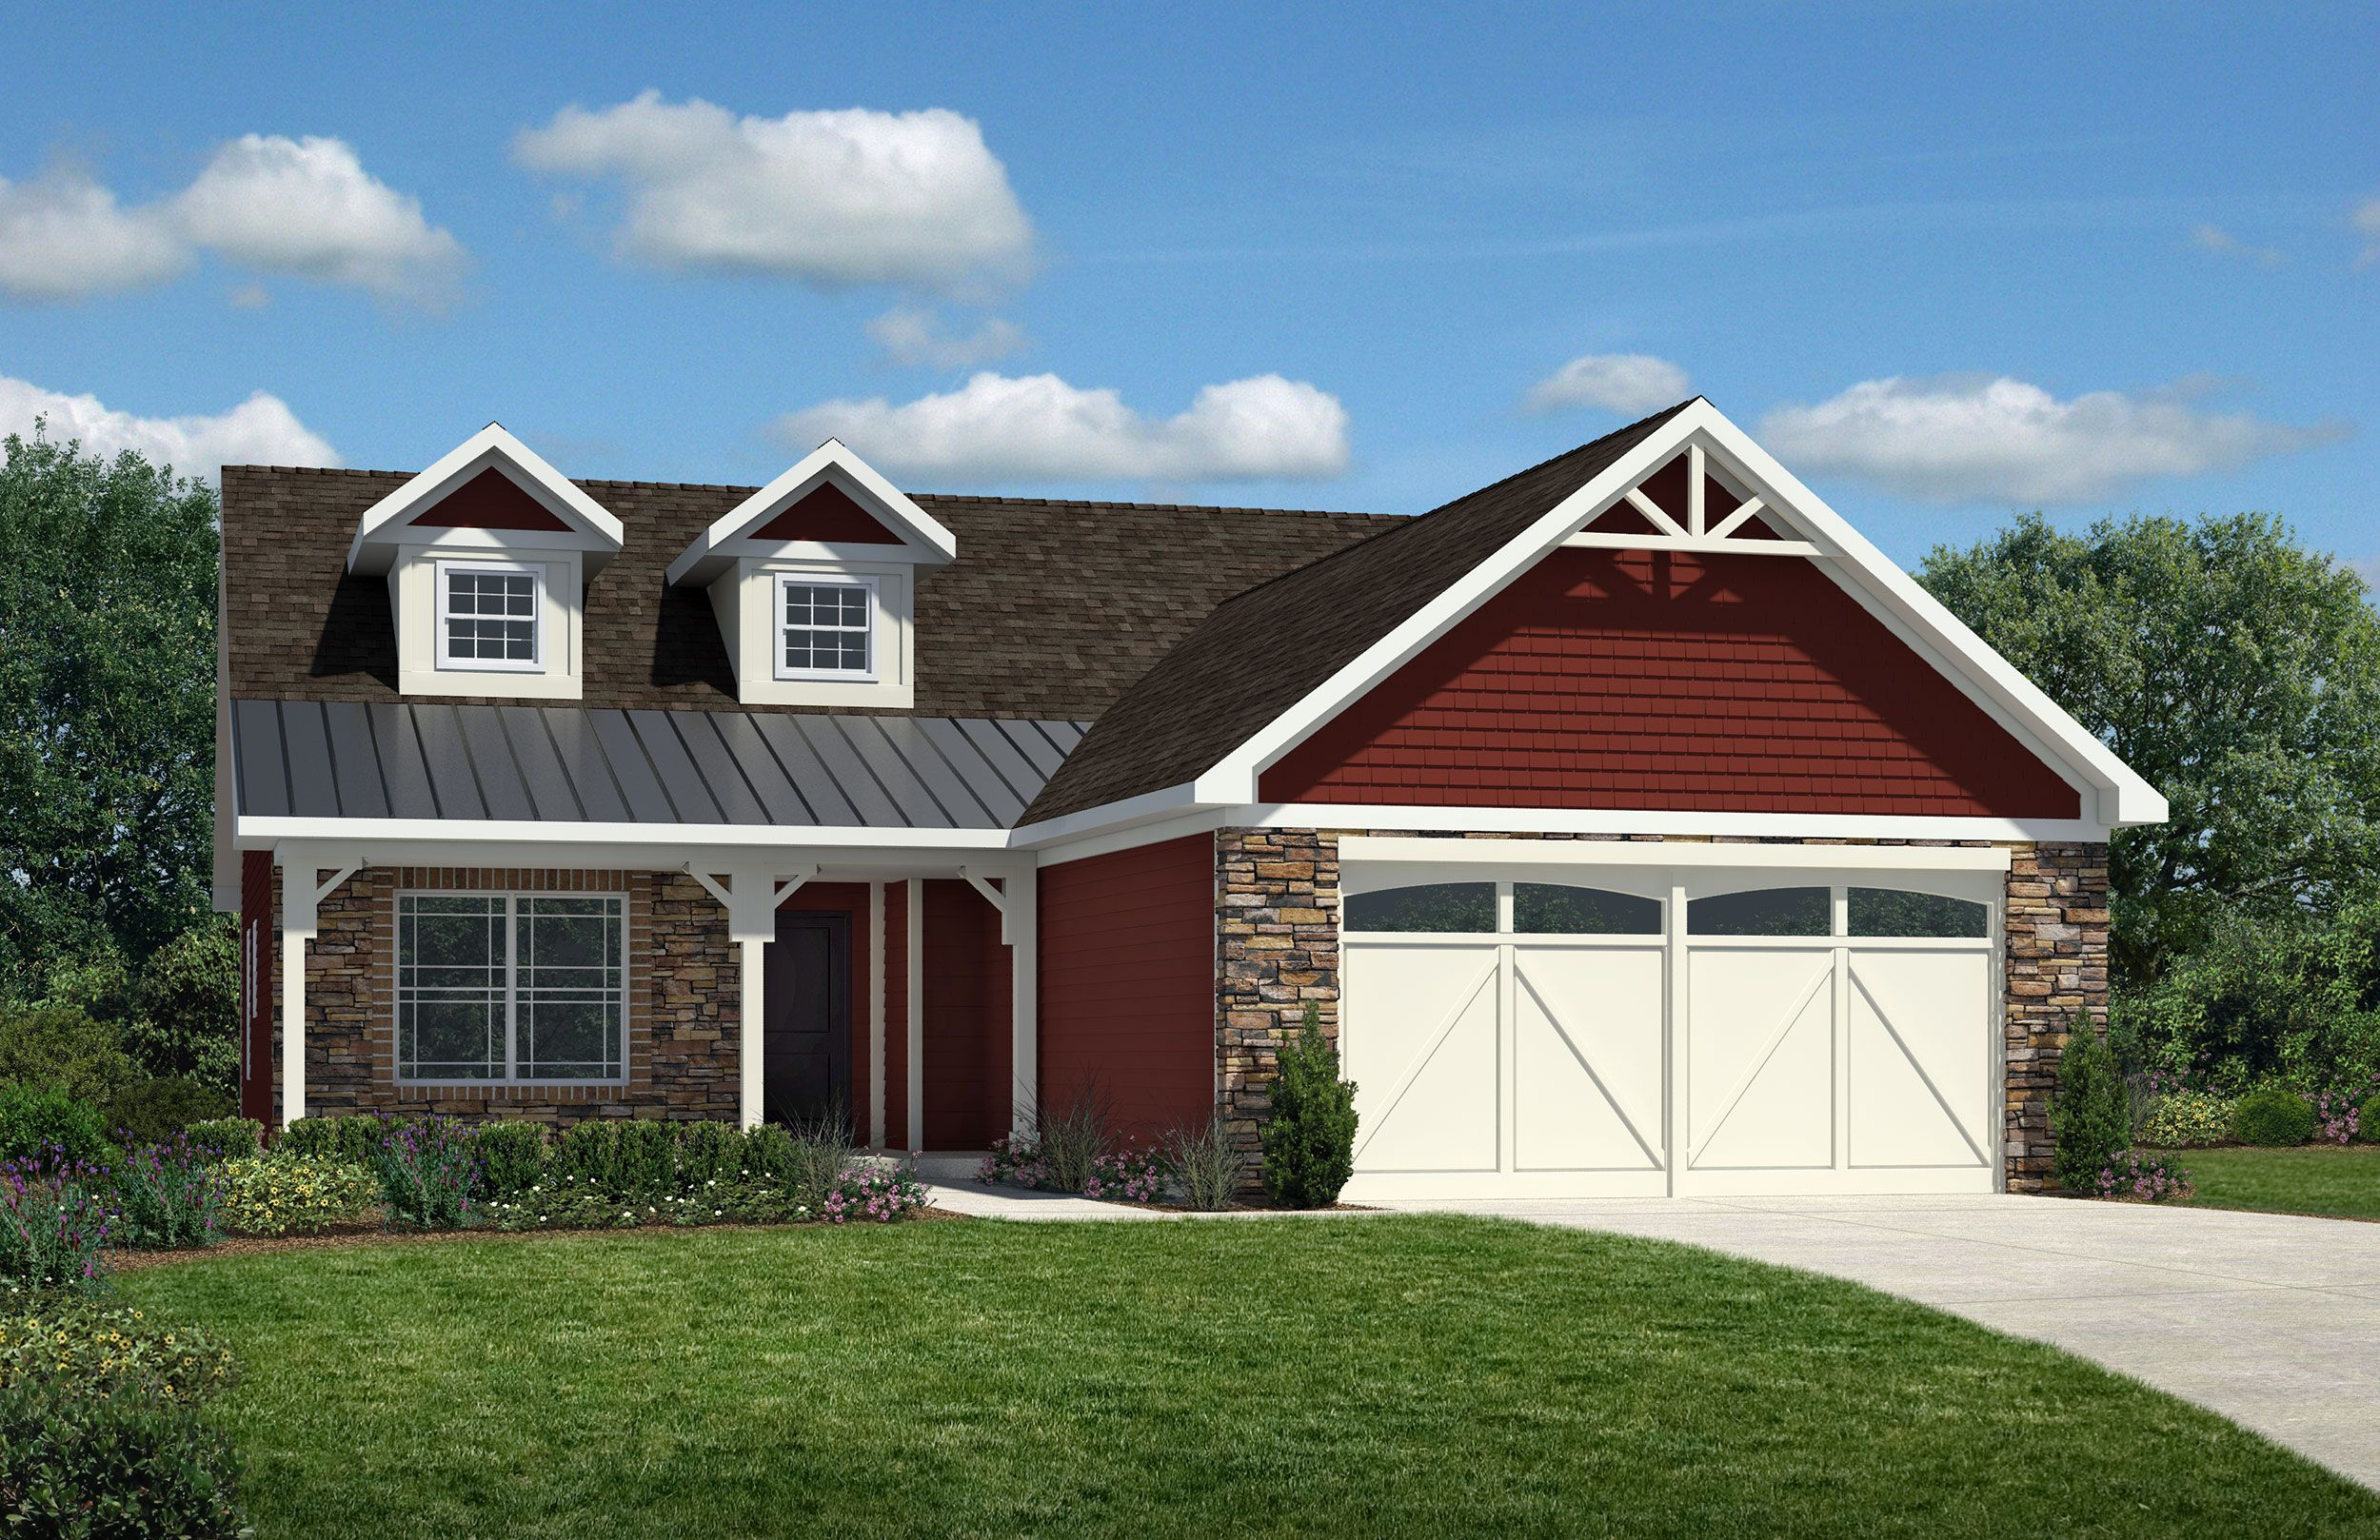 Westport homes of indianapolis new house models in for House builders in indiana